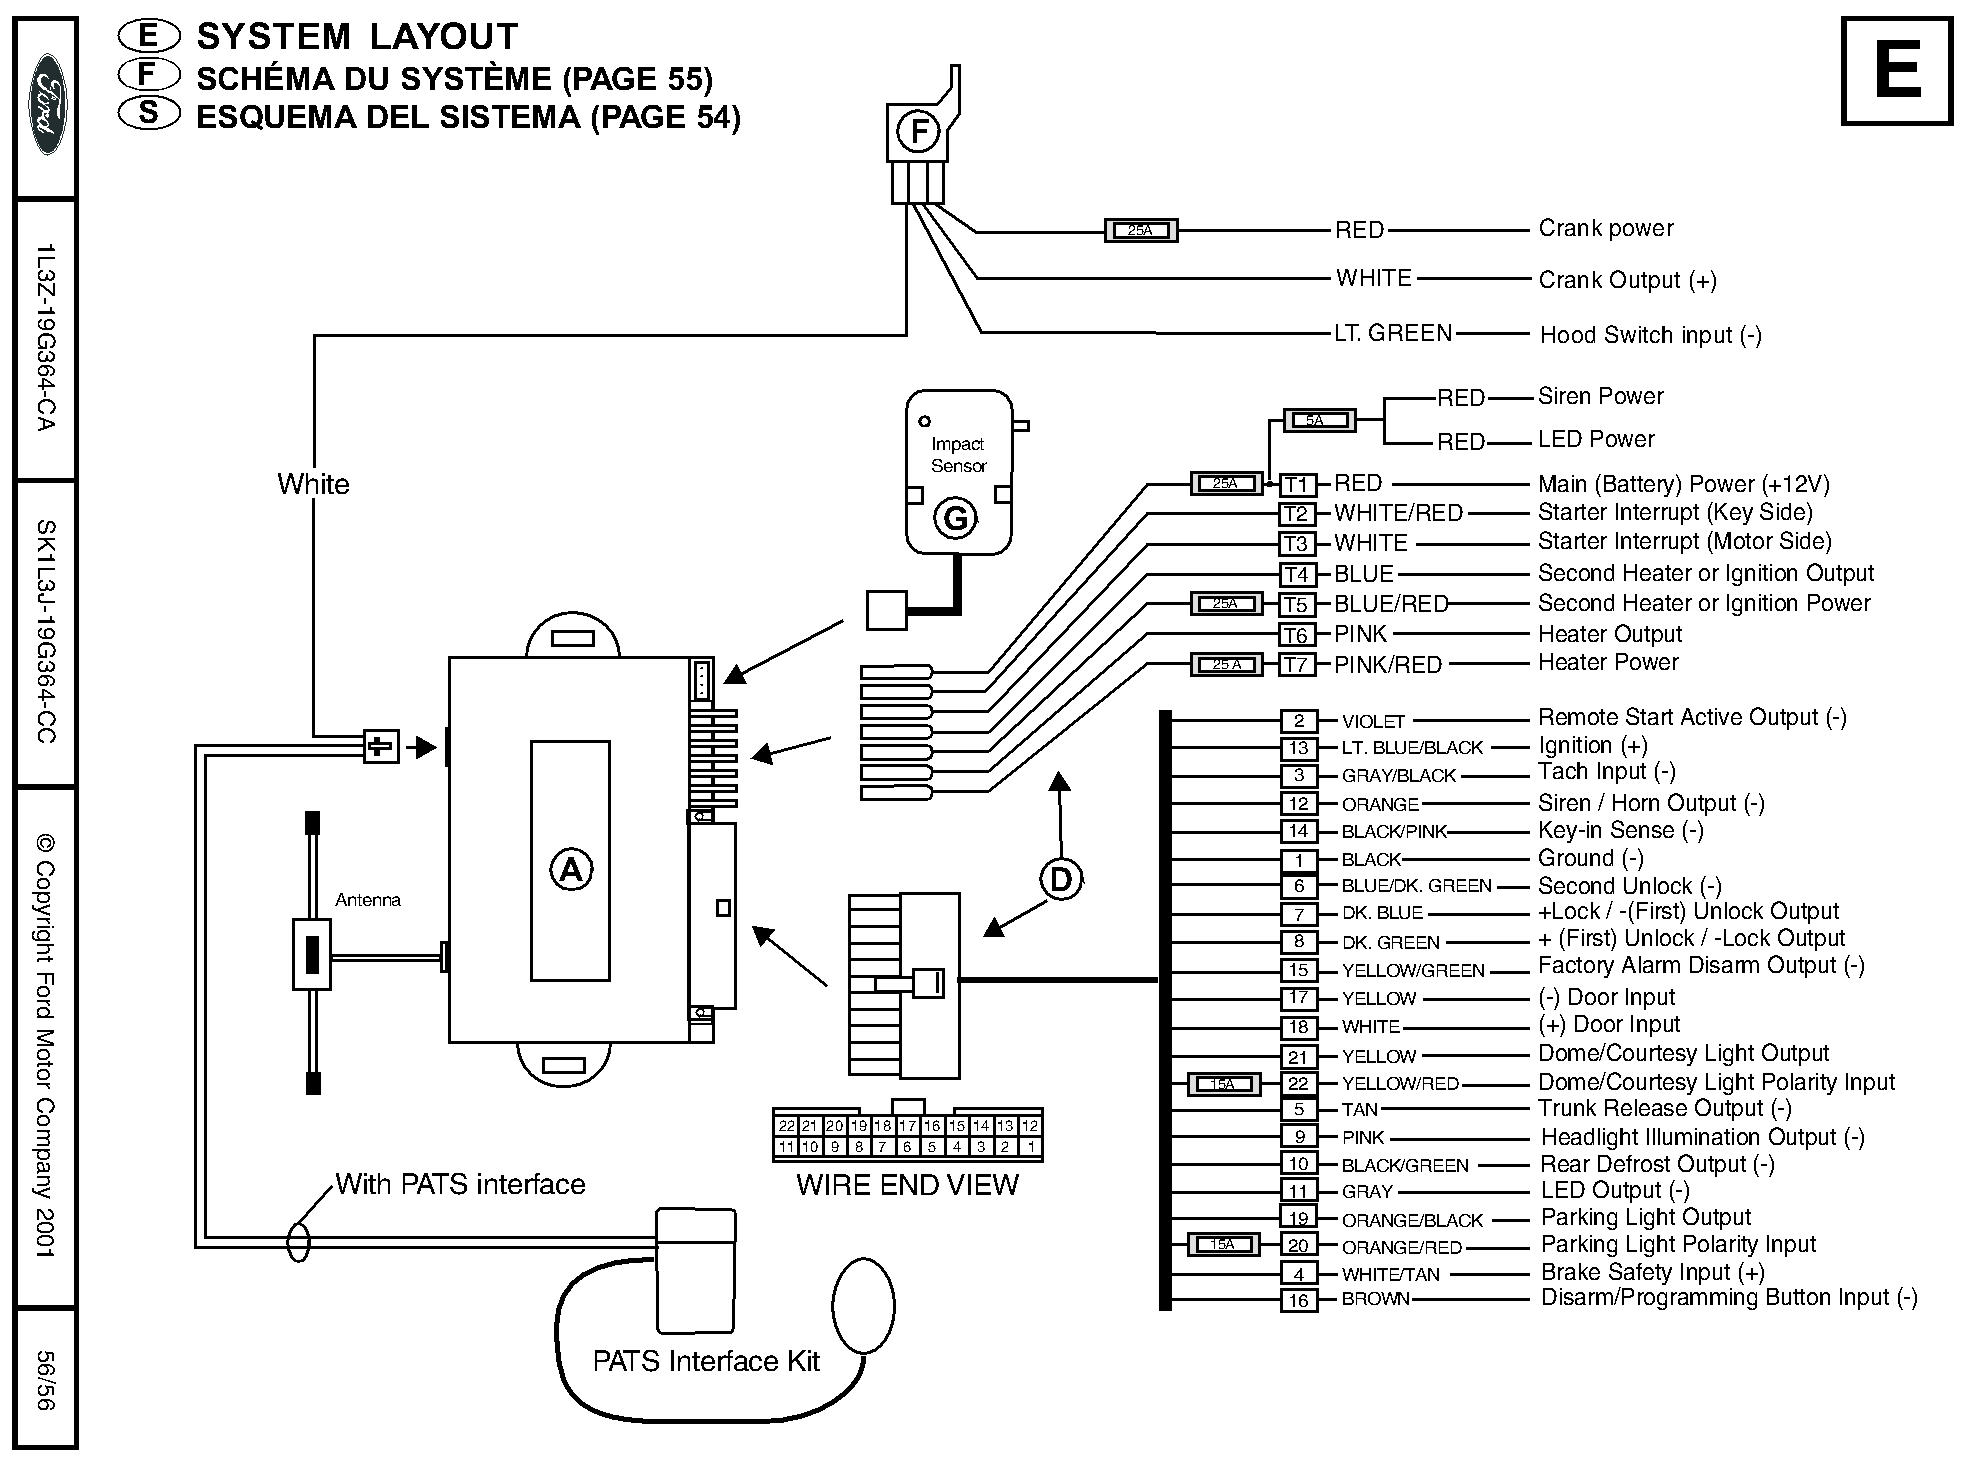 viper remote start wiring diagram  viper  free engine